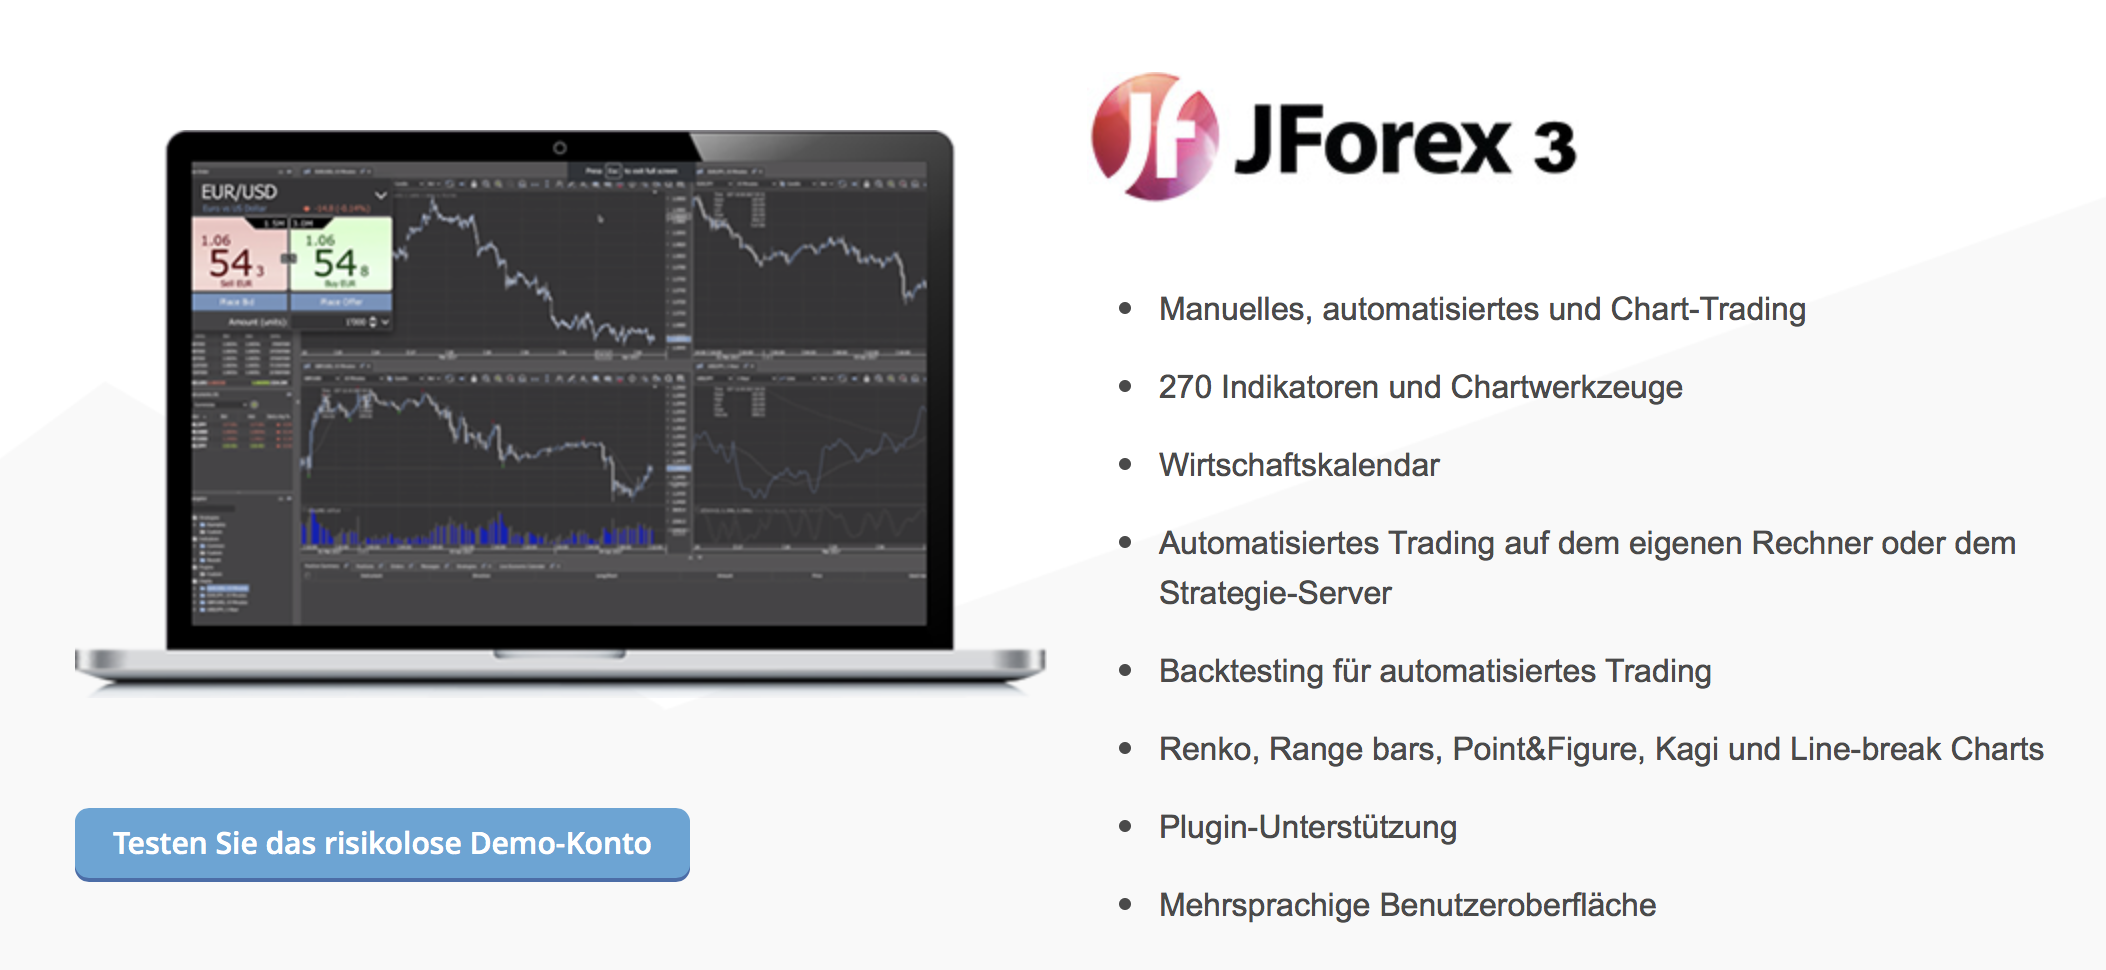 JForex Forex Brokers This directory enables you to choose your preferred Forex Brokers with the JForex Platform. Use the filters below in order to get a more specific list which is suitable for.